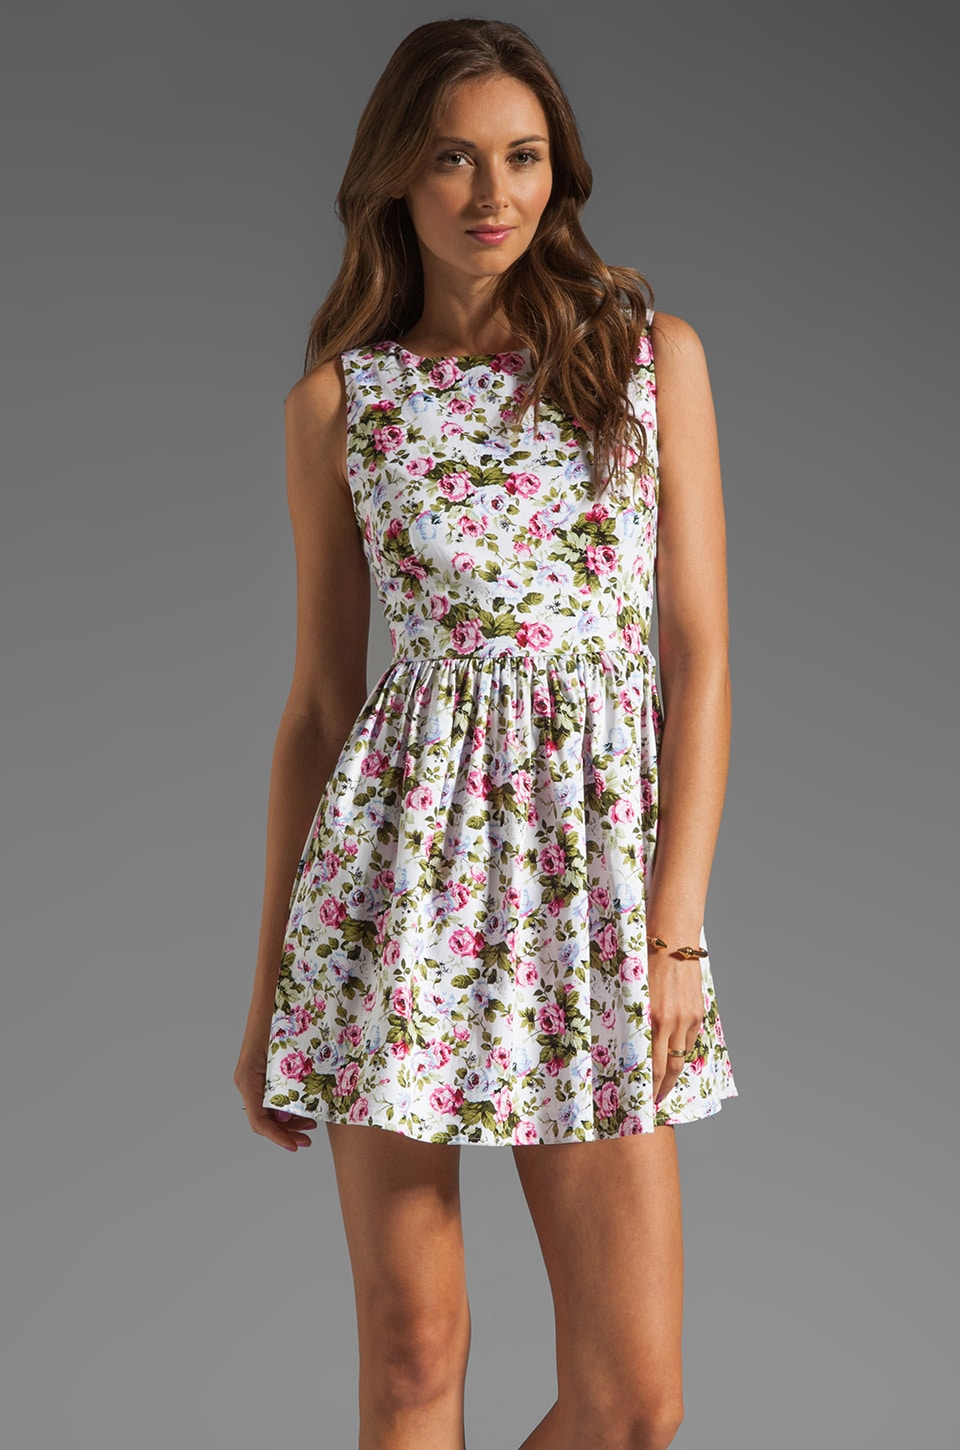 JARLO Selena Floral Dress in White